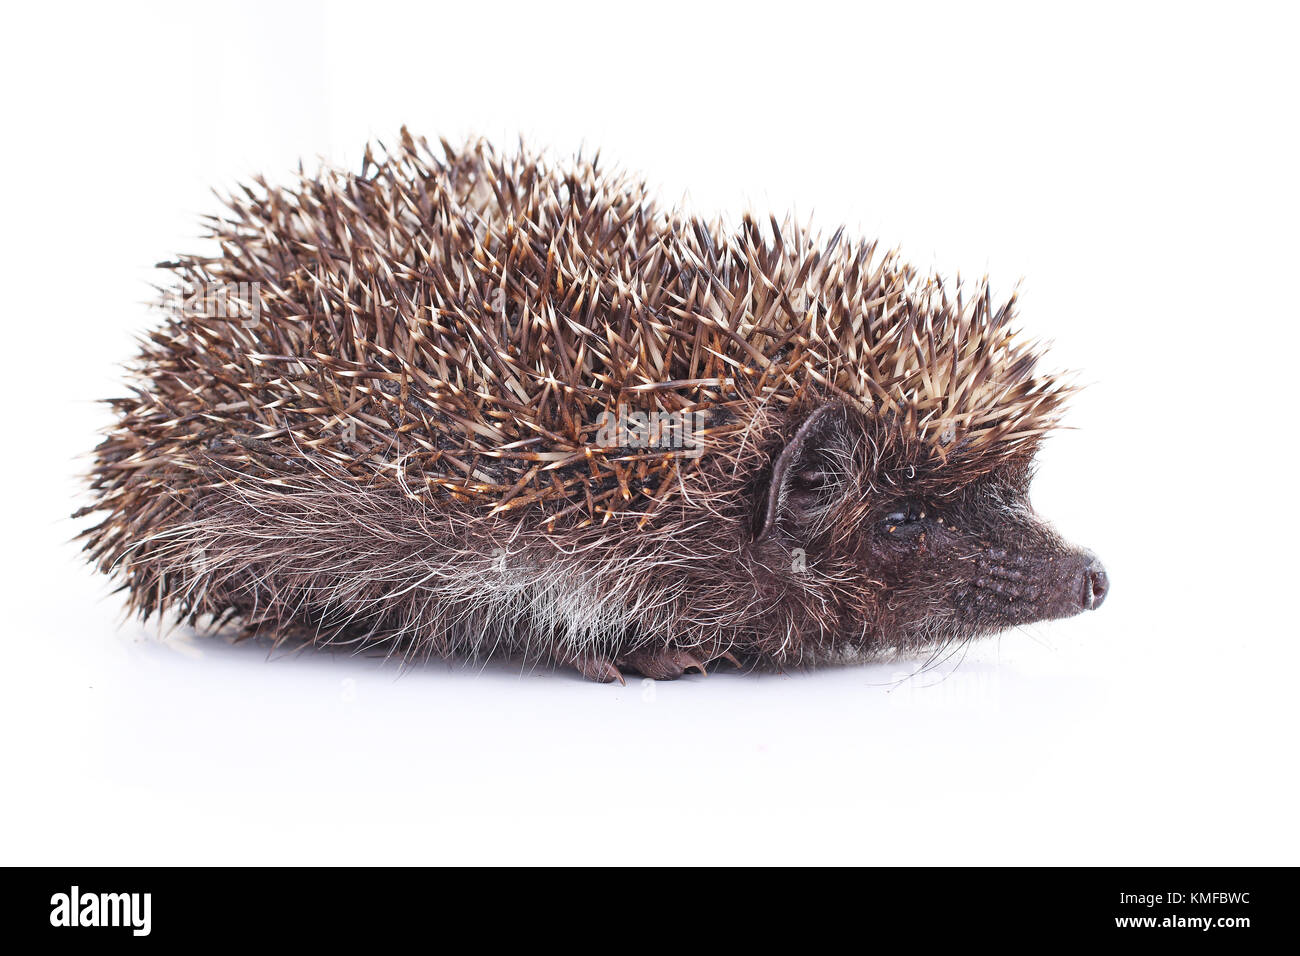 Hedgehog wild animal quill closeup on isolated white studio background. - Stock Image